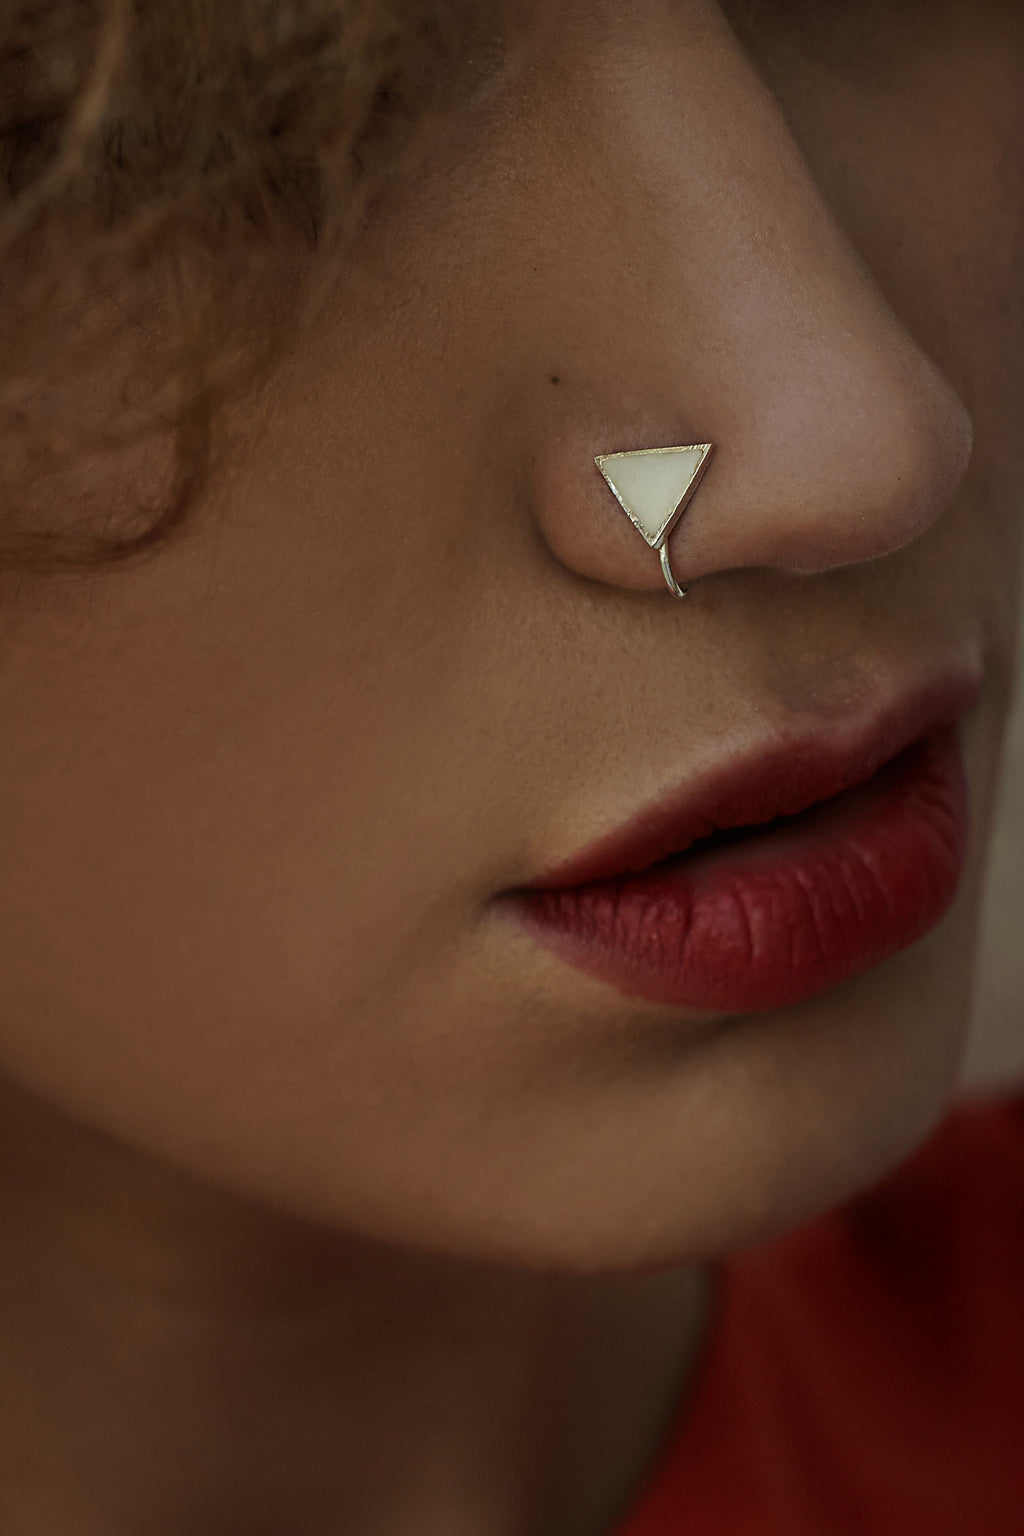 Triangular Silver Nose Pin/Clip with White Enamel (NS R07 W)